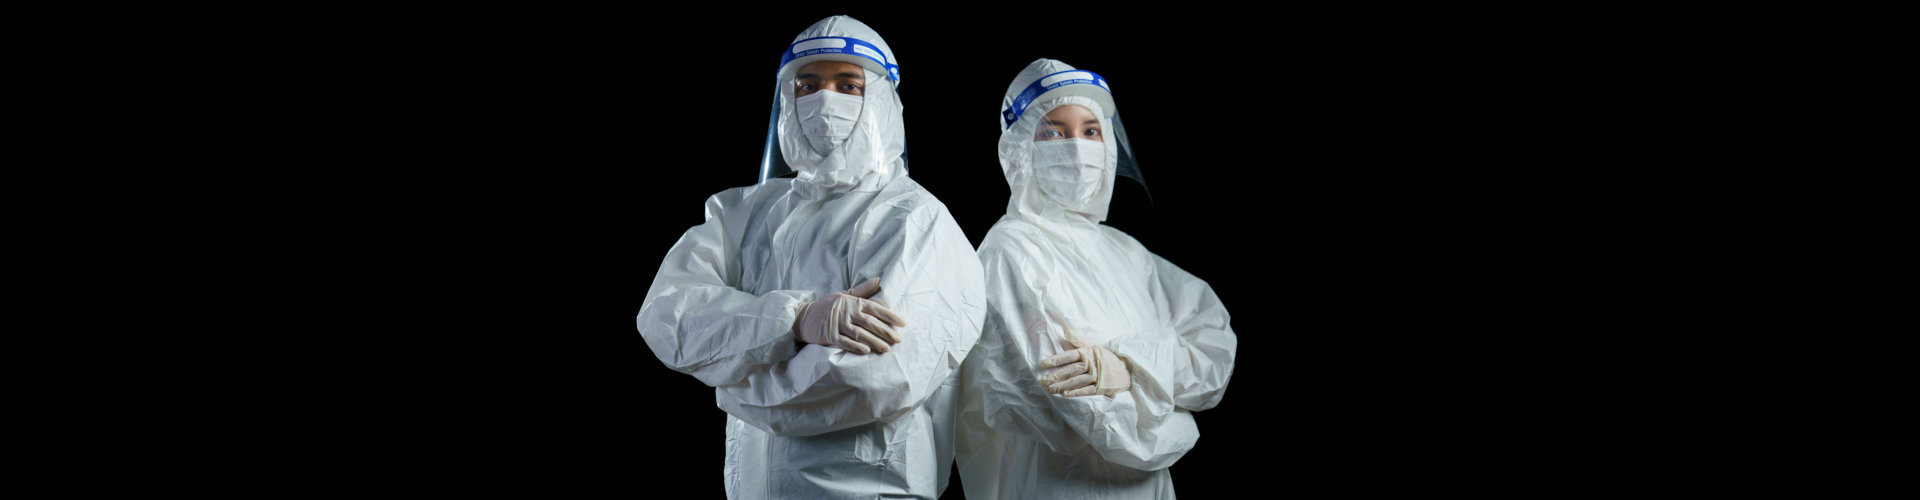 Doctor wearing ppe suit and face mask and face shield in hospital, Corona virus, Covid-19 virus outbreak concept.